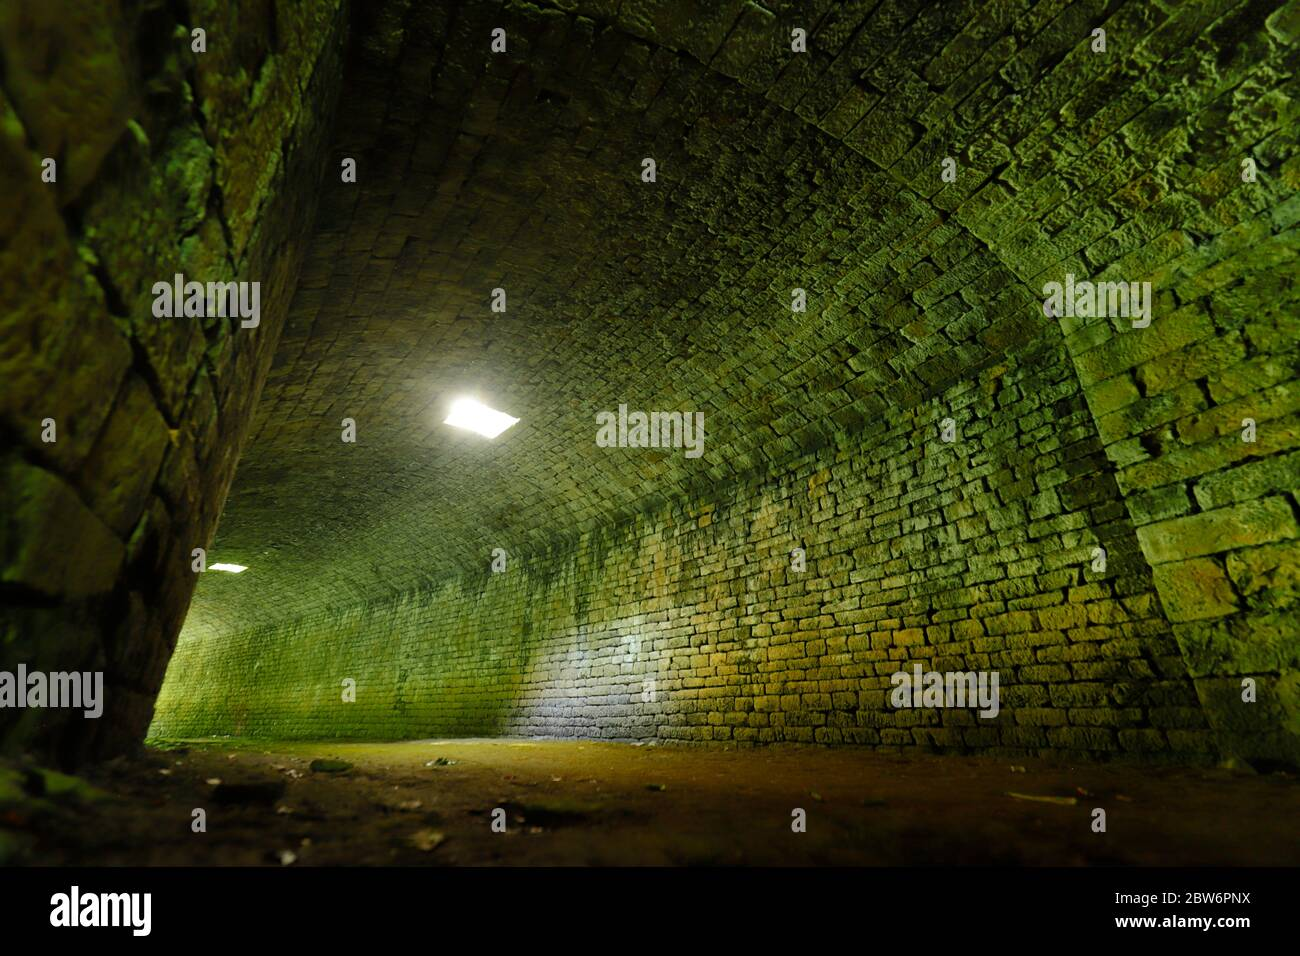 Parlington Tunnel , also known as 'The Dark Arch' is located along The Fly Line in Parlington Woods,Aberford,Leeds. Stock Photo